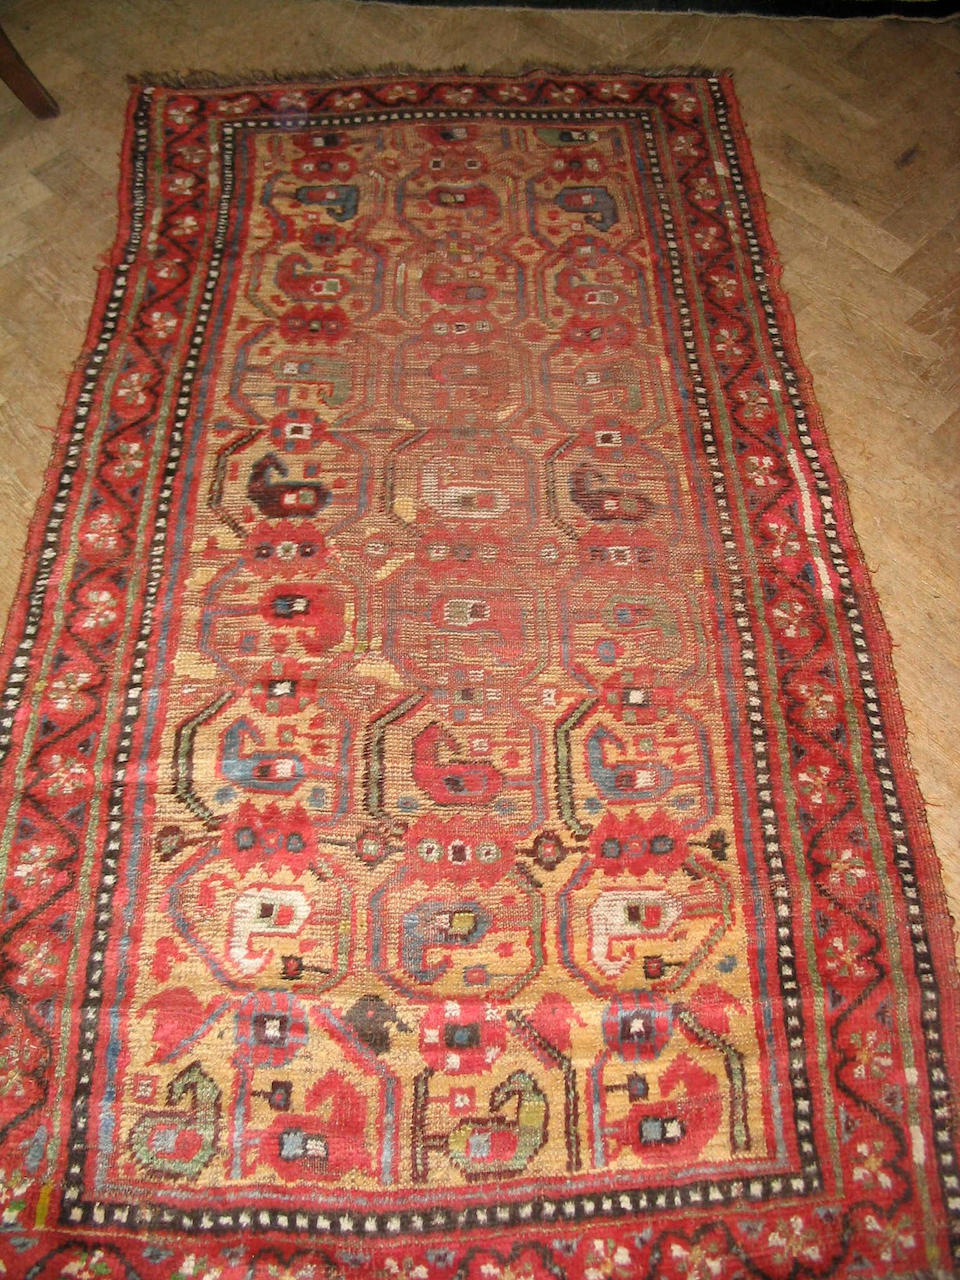 An Afshar rug South West Persia, 161cm x 120cm together with another two rugs (3)